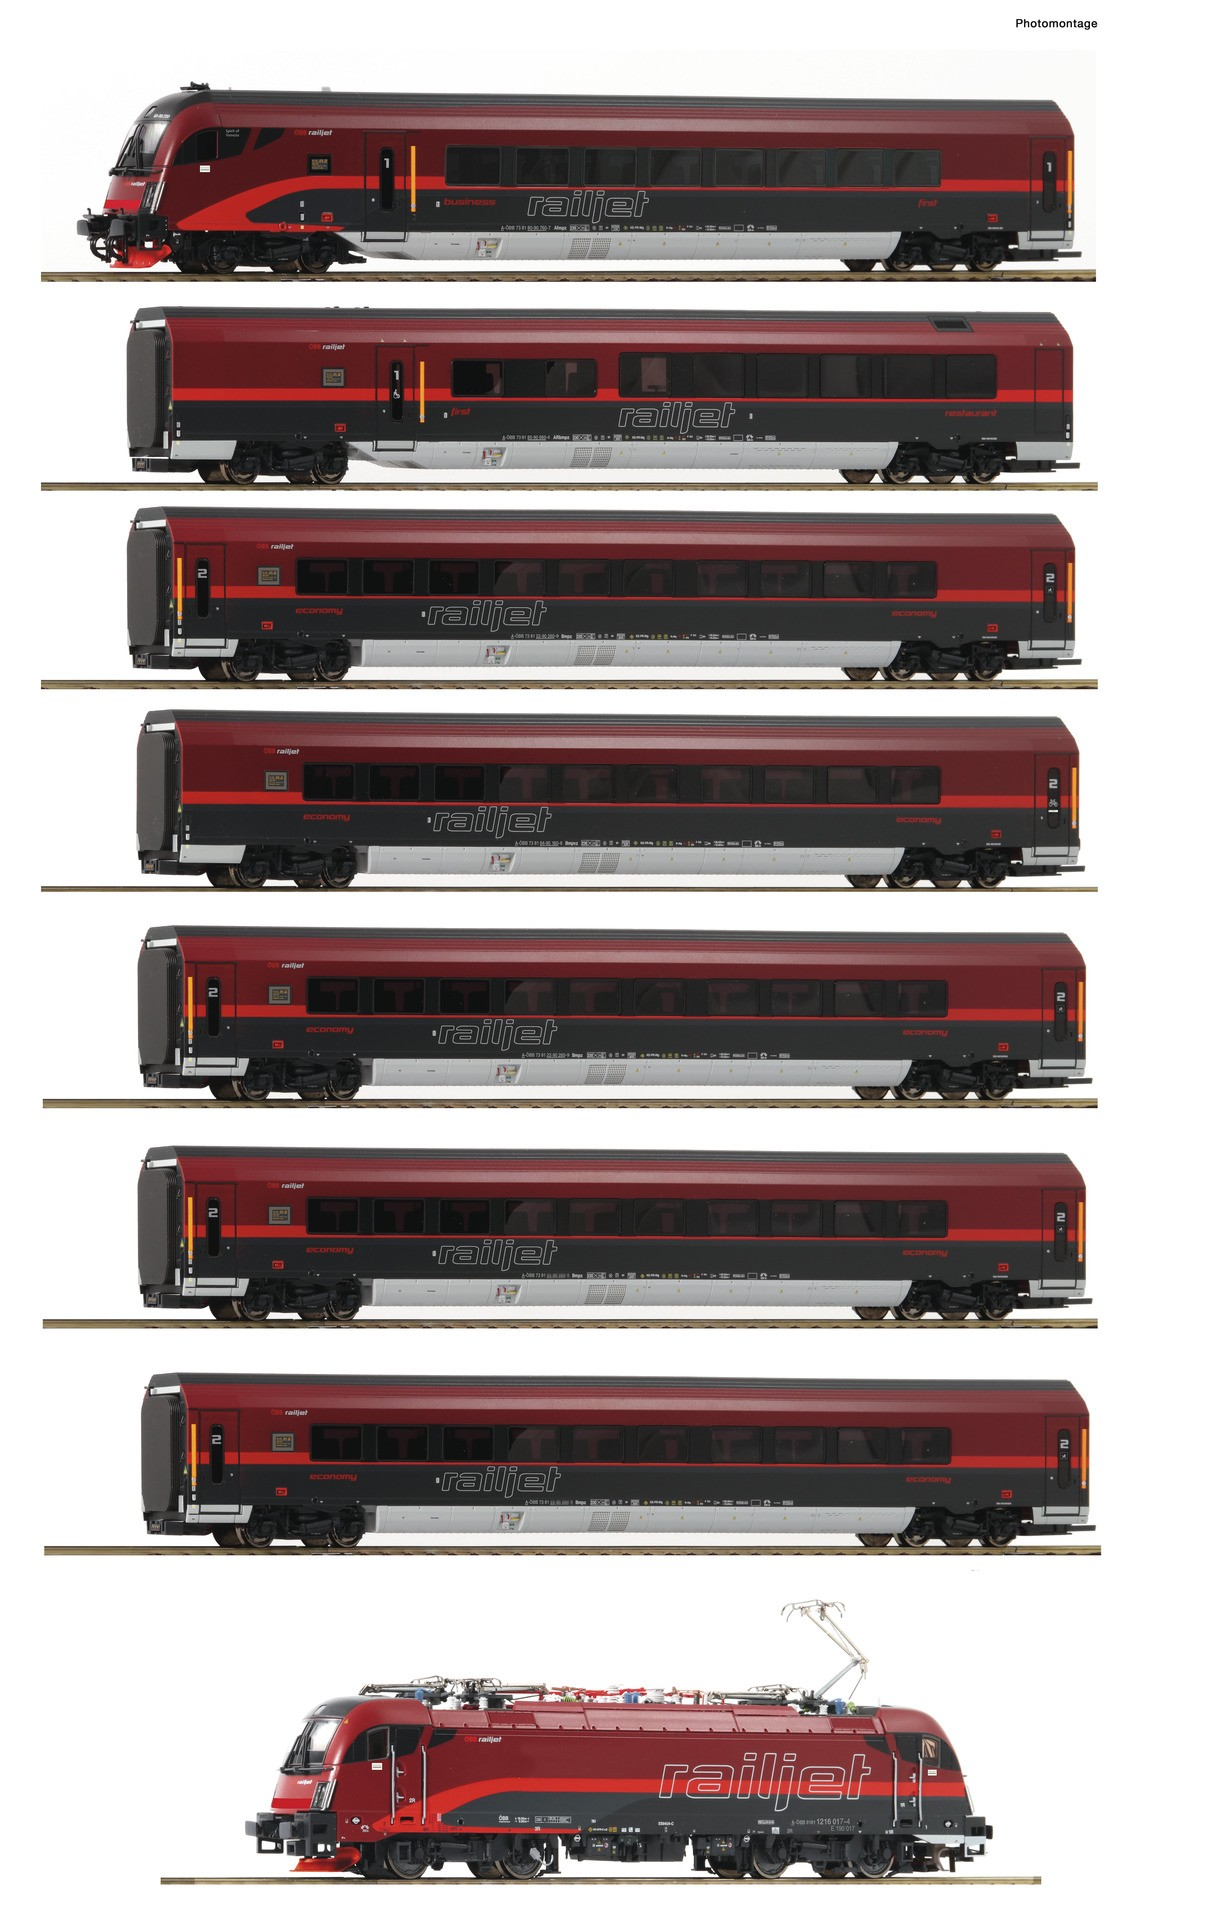 Roco 74114 Railjet Set 8 piece set: OBB